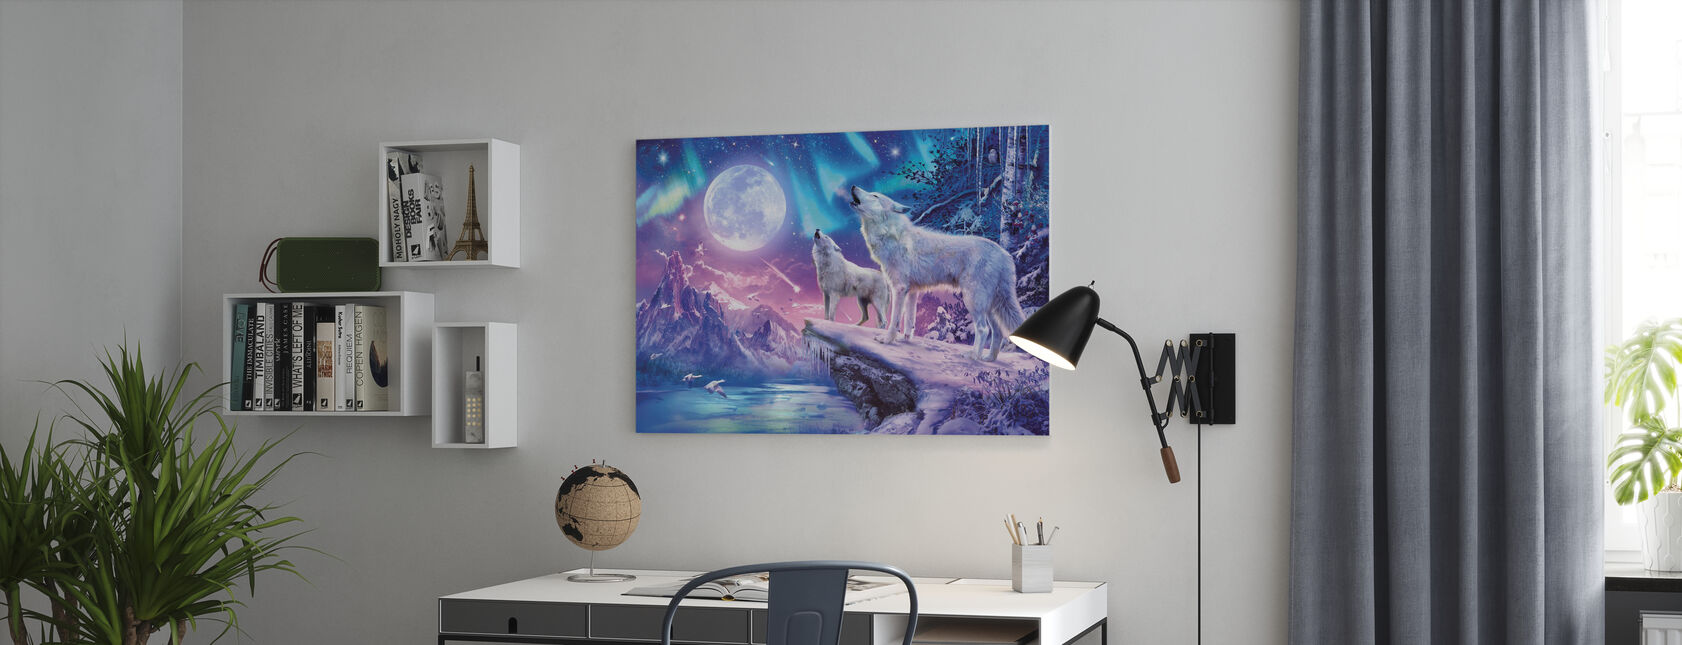 Wolves and Northern Lights - Canvas print - Office